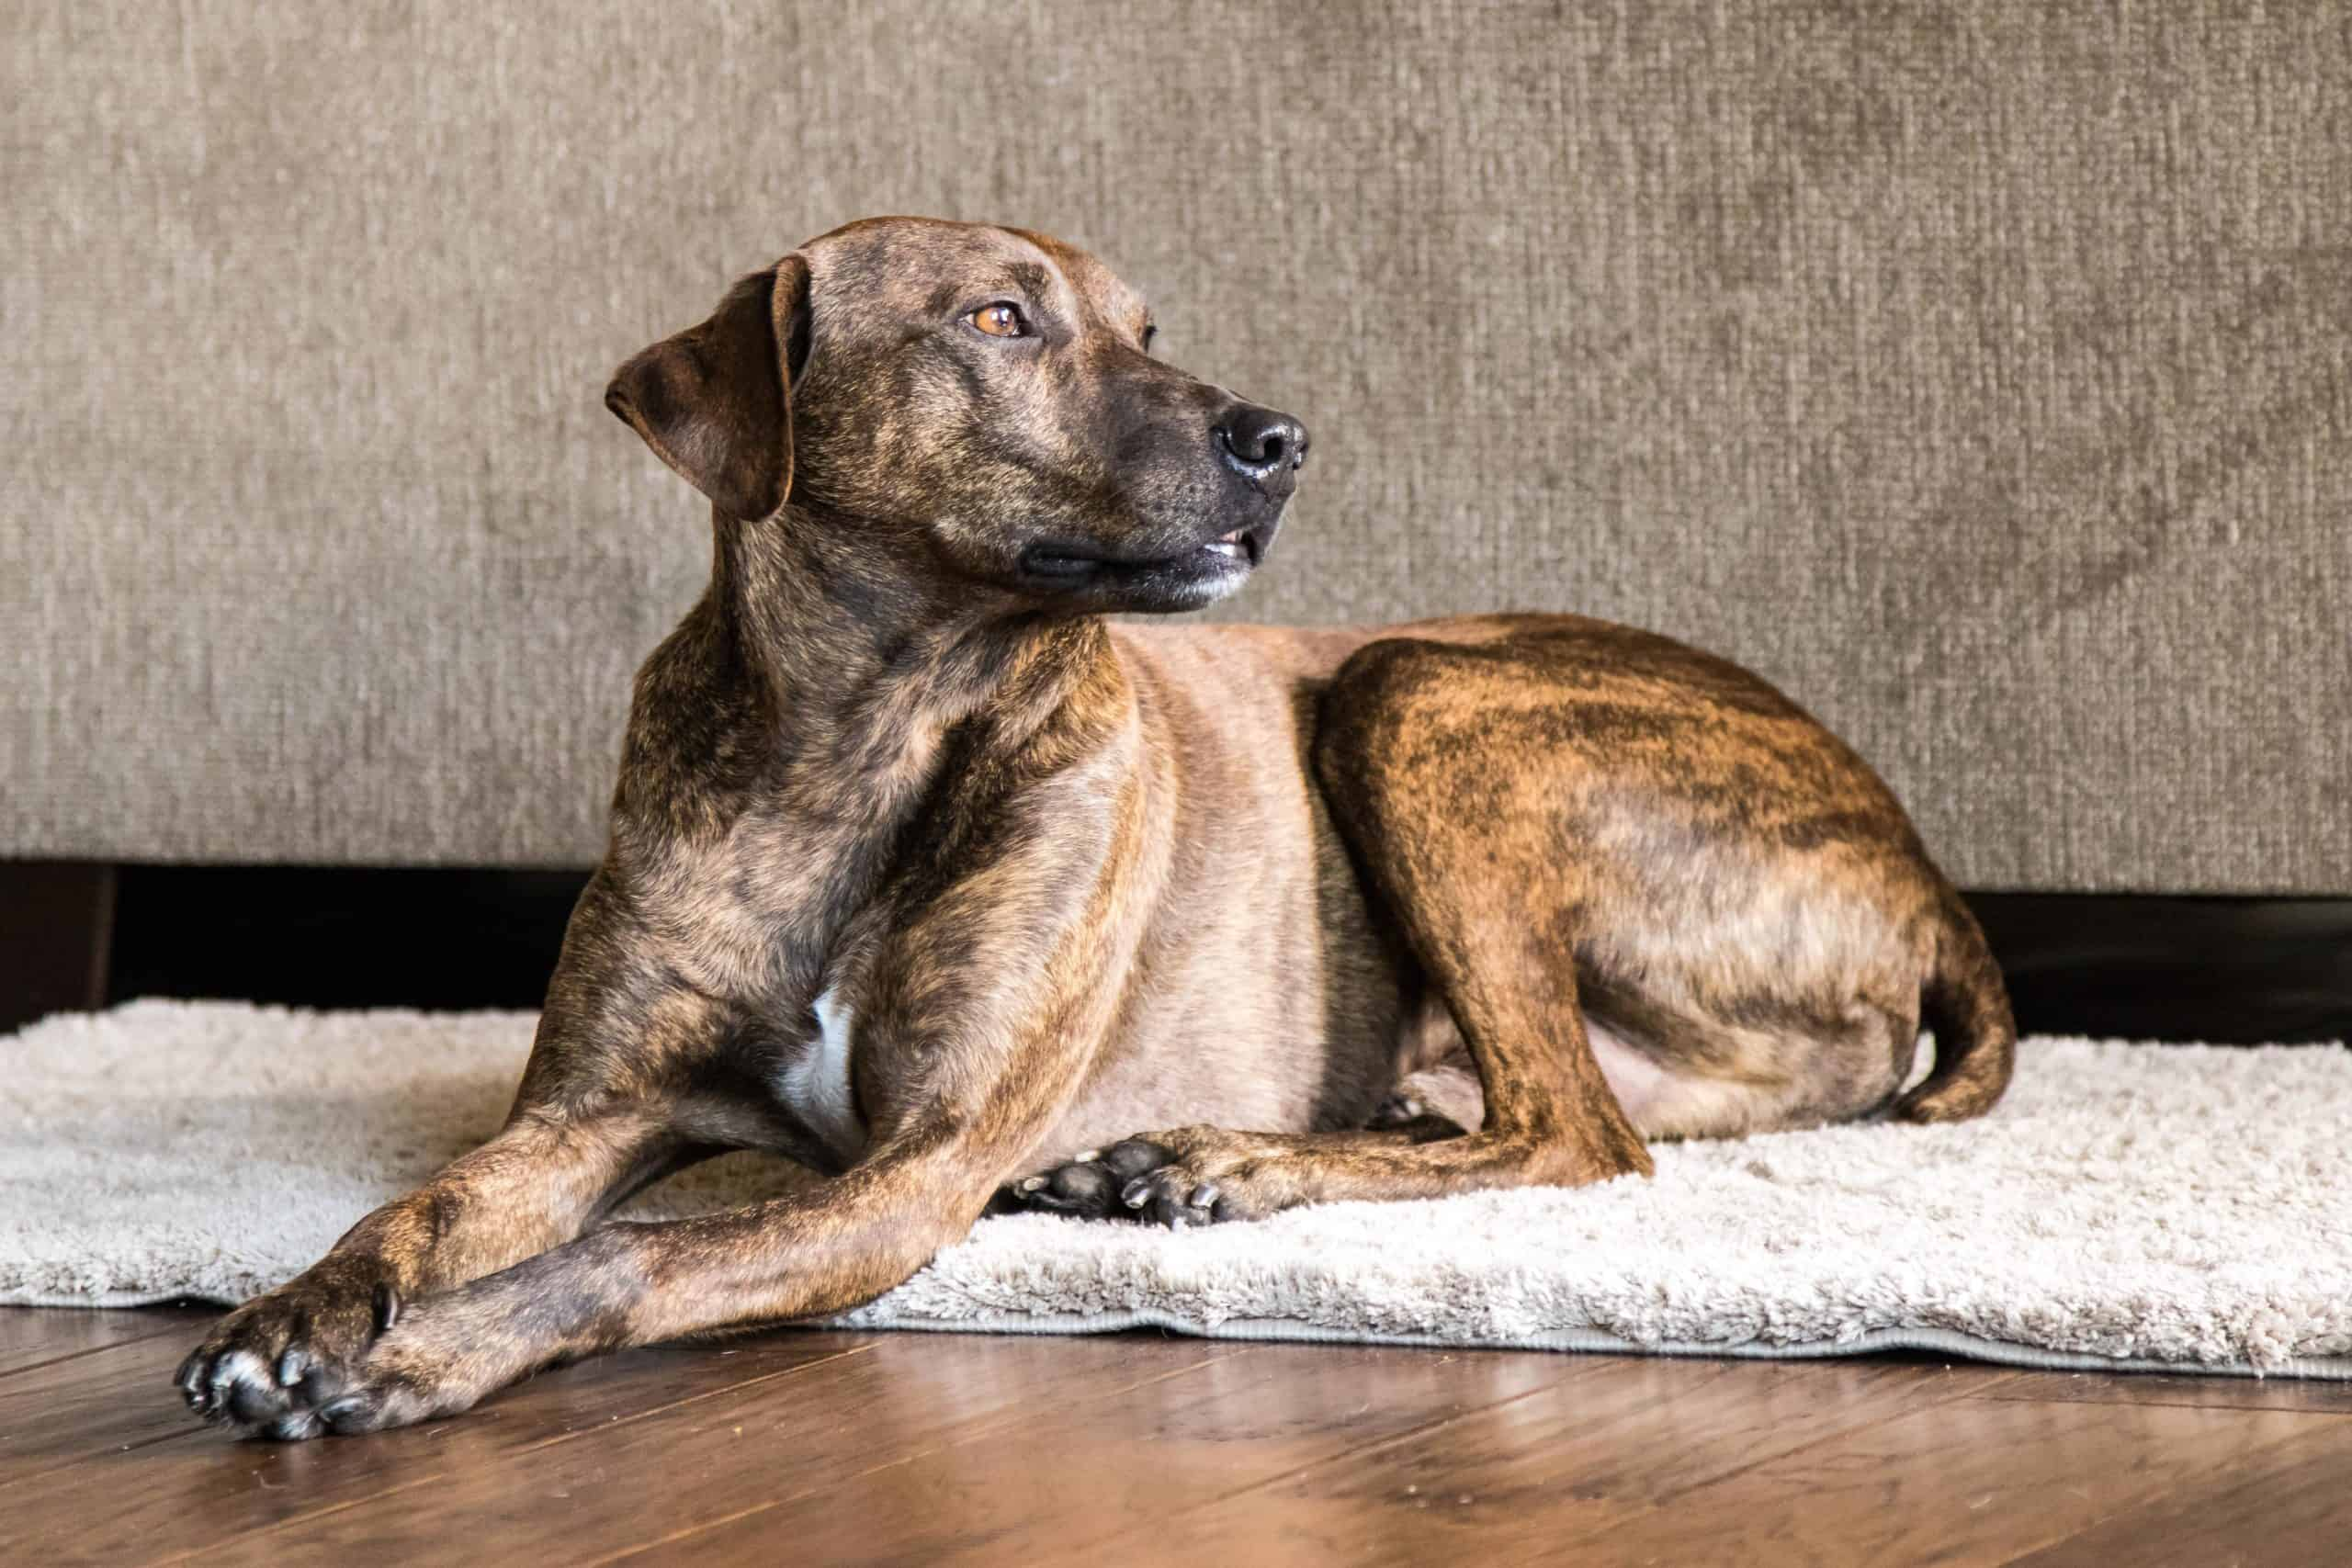 Plott hound relaxes on rug at home. Large game hounds like the Plott hound were bred to have stamina, strength, and endurance.